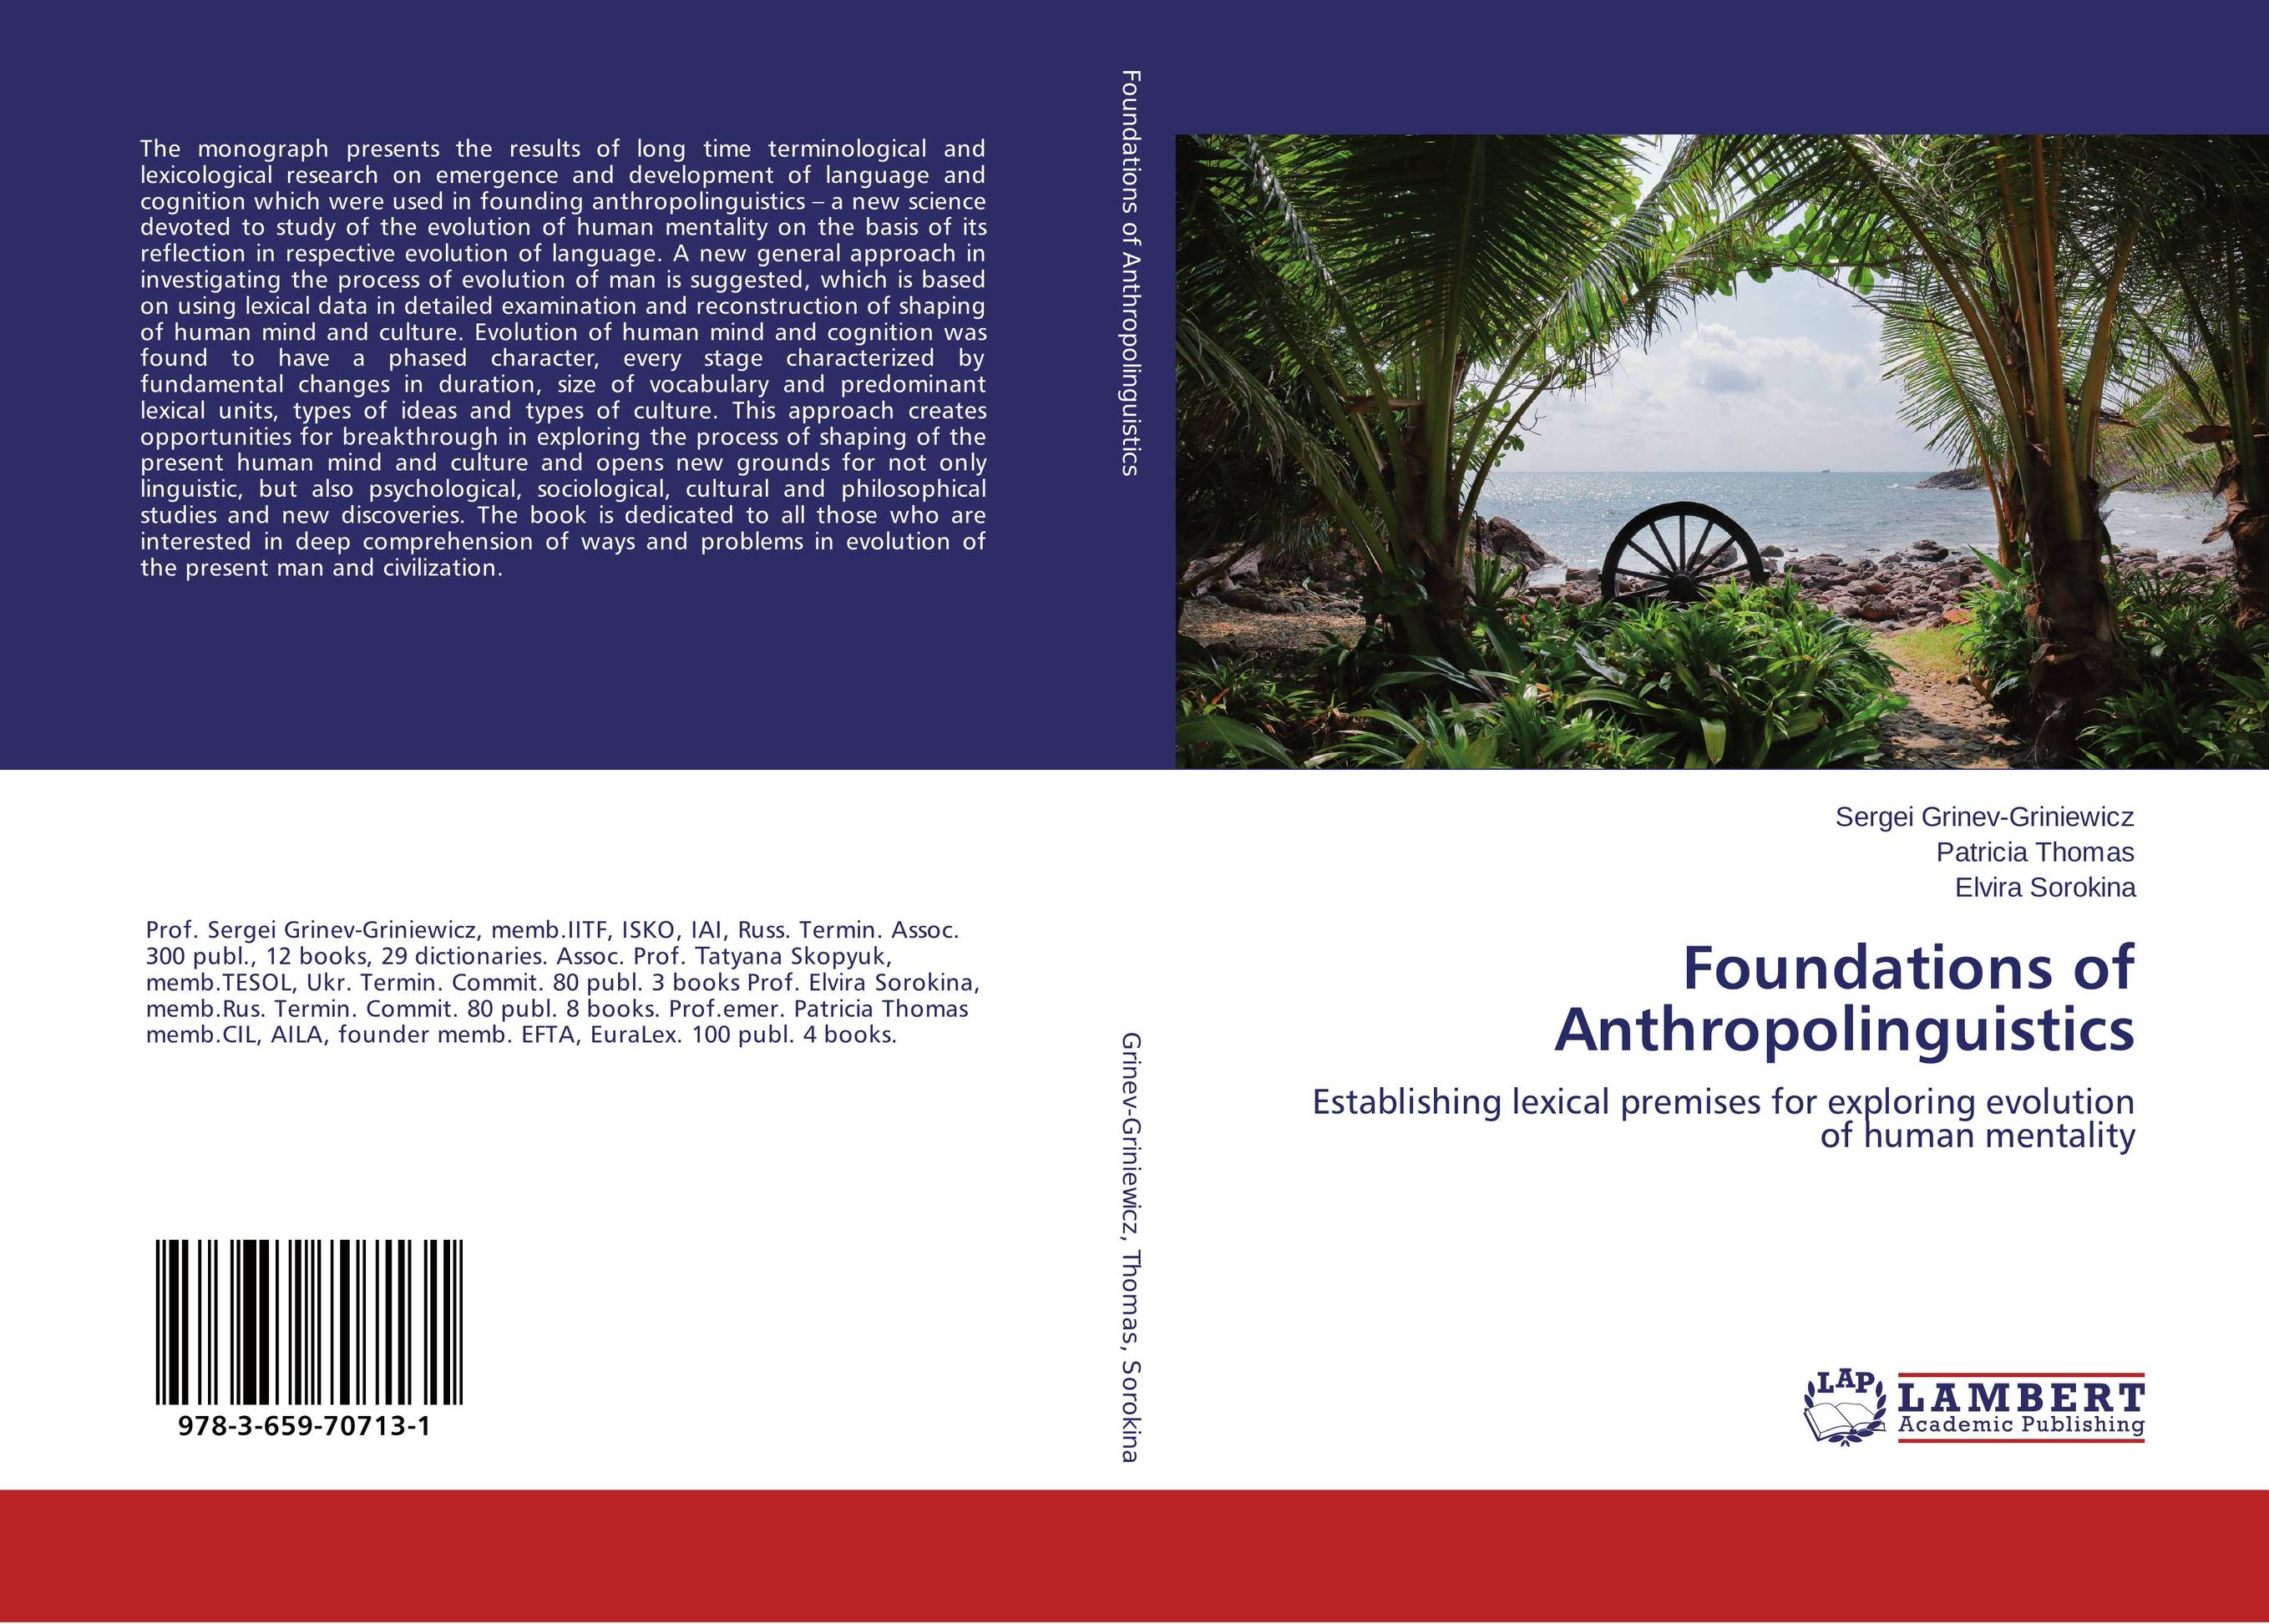 Foundations of Anthropolinguistics ghada abdelhady new des based on elliptic curve